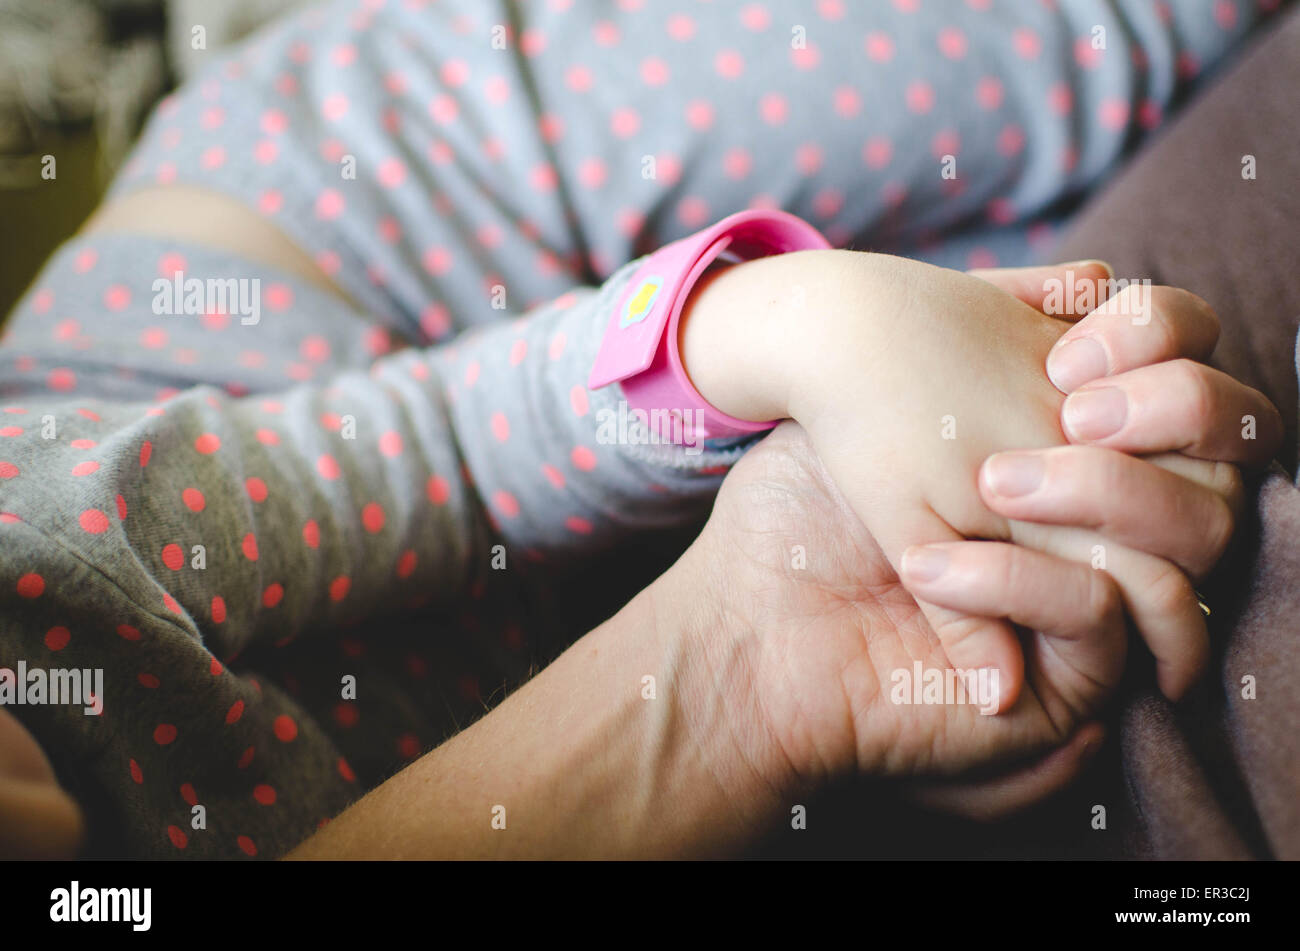 Mother and daughter sitting together and holding hands - Stock Image